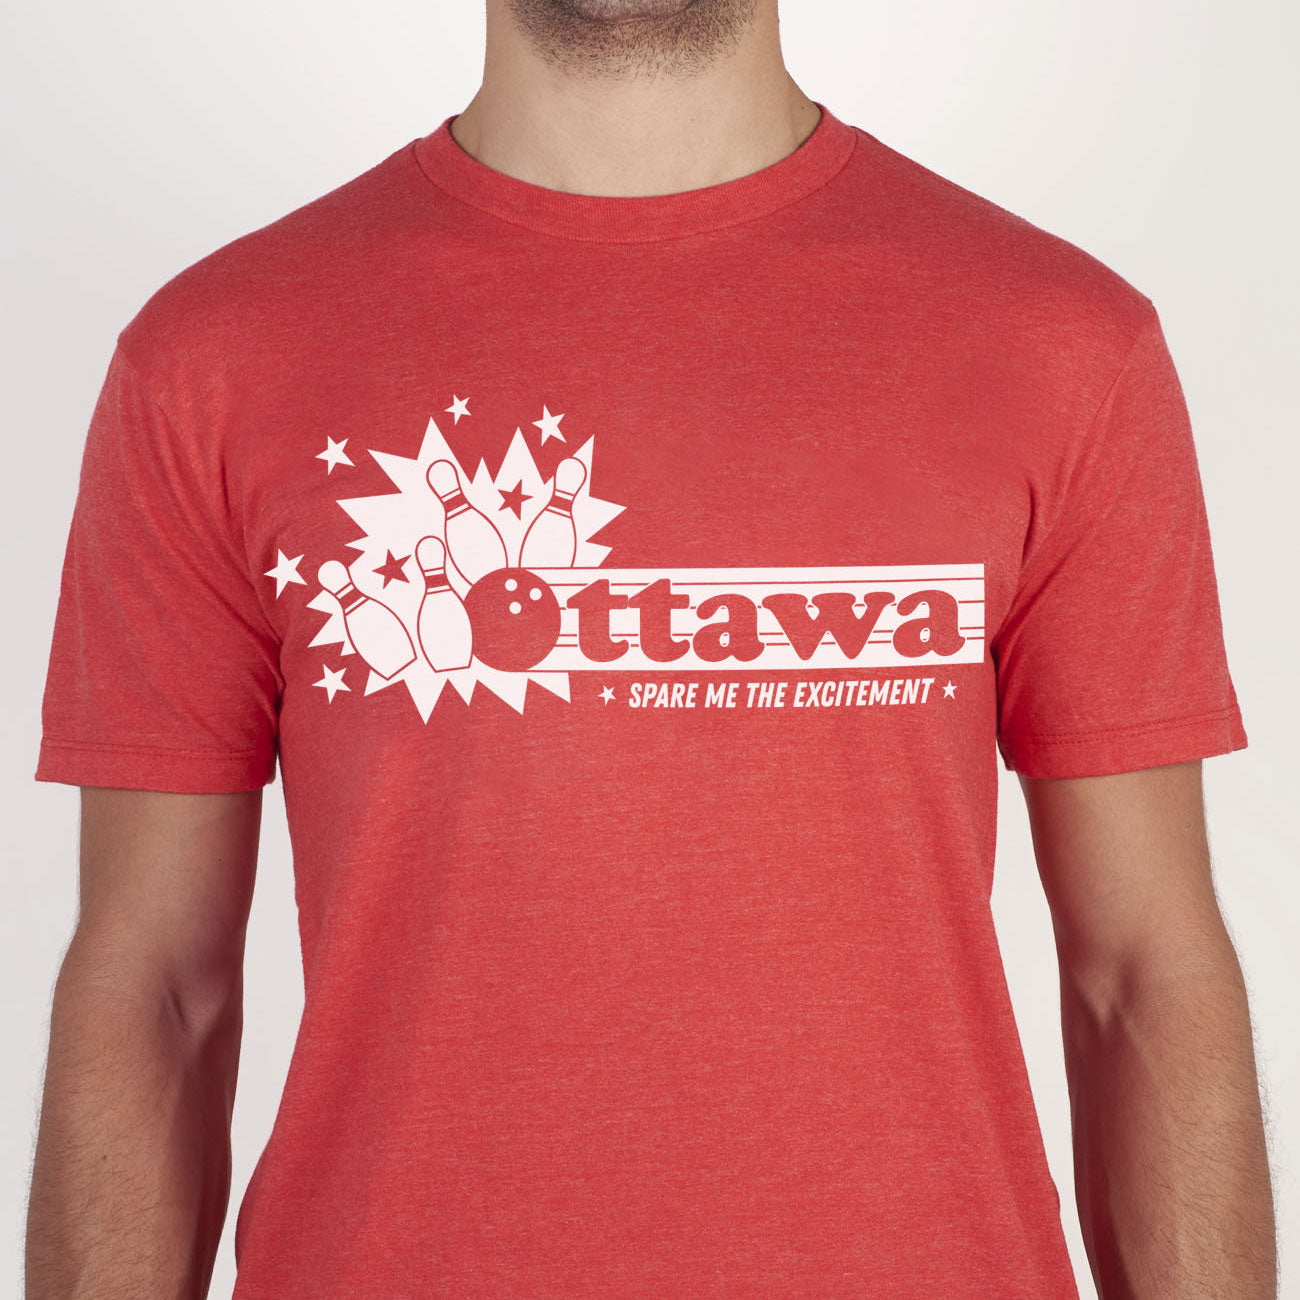 Spare Me The Excitement Ottawa Tee